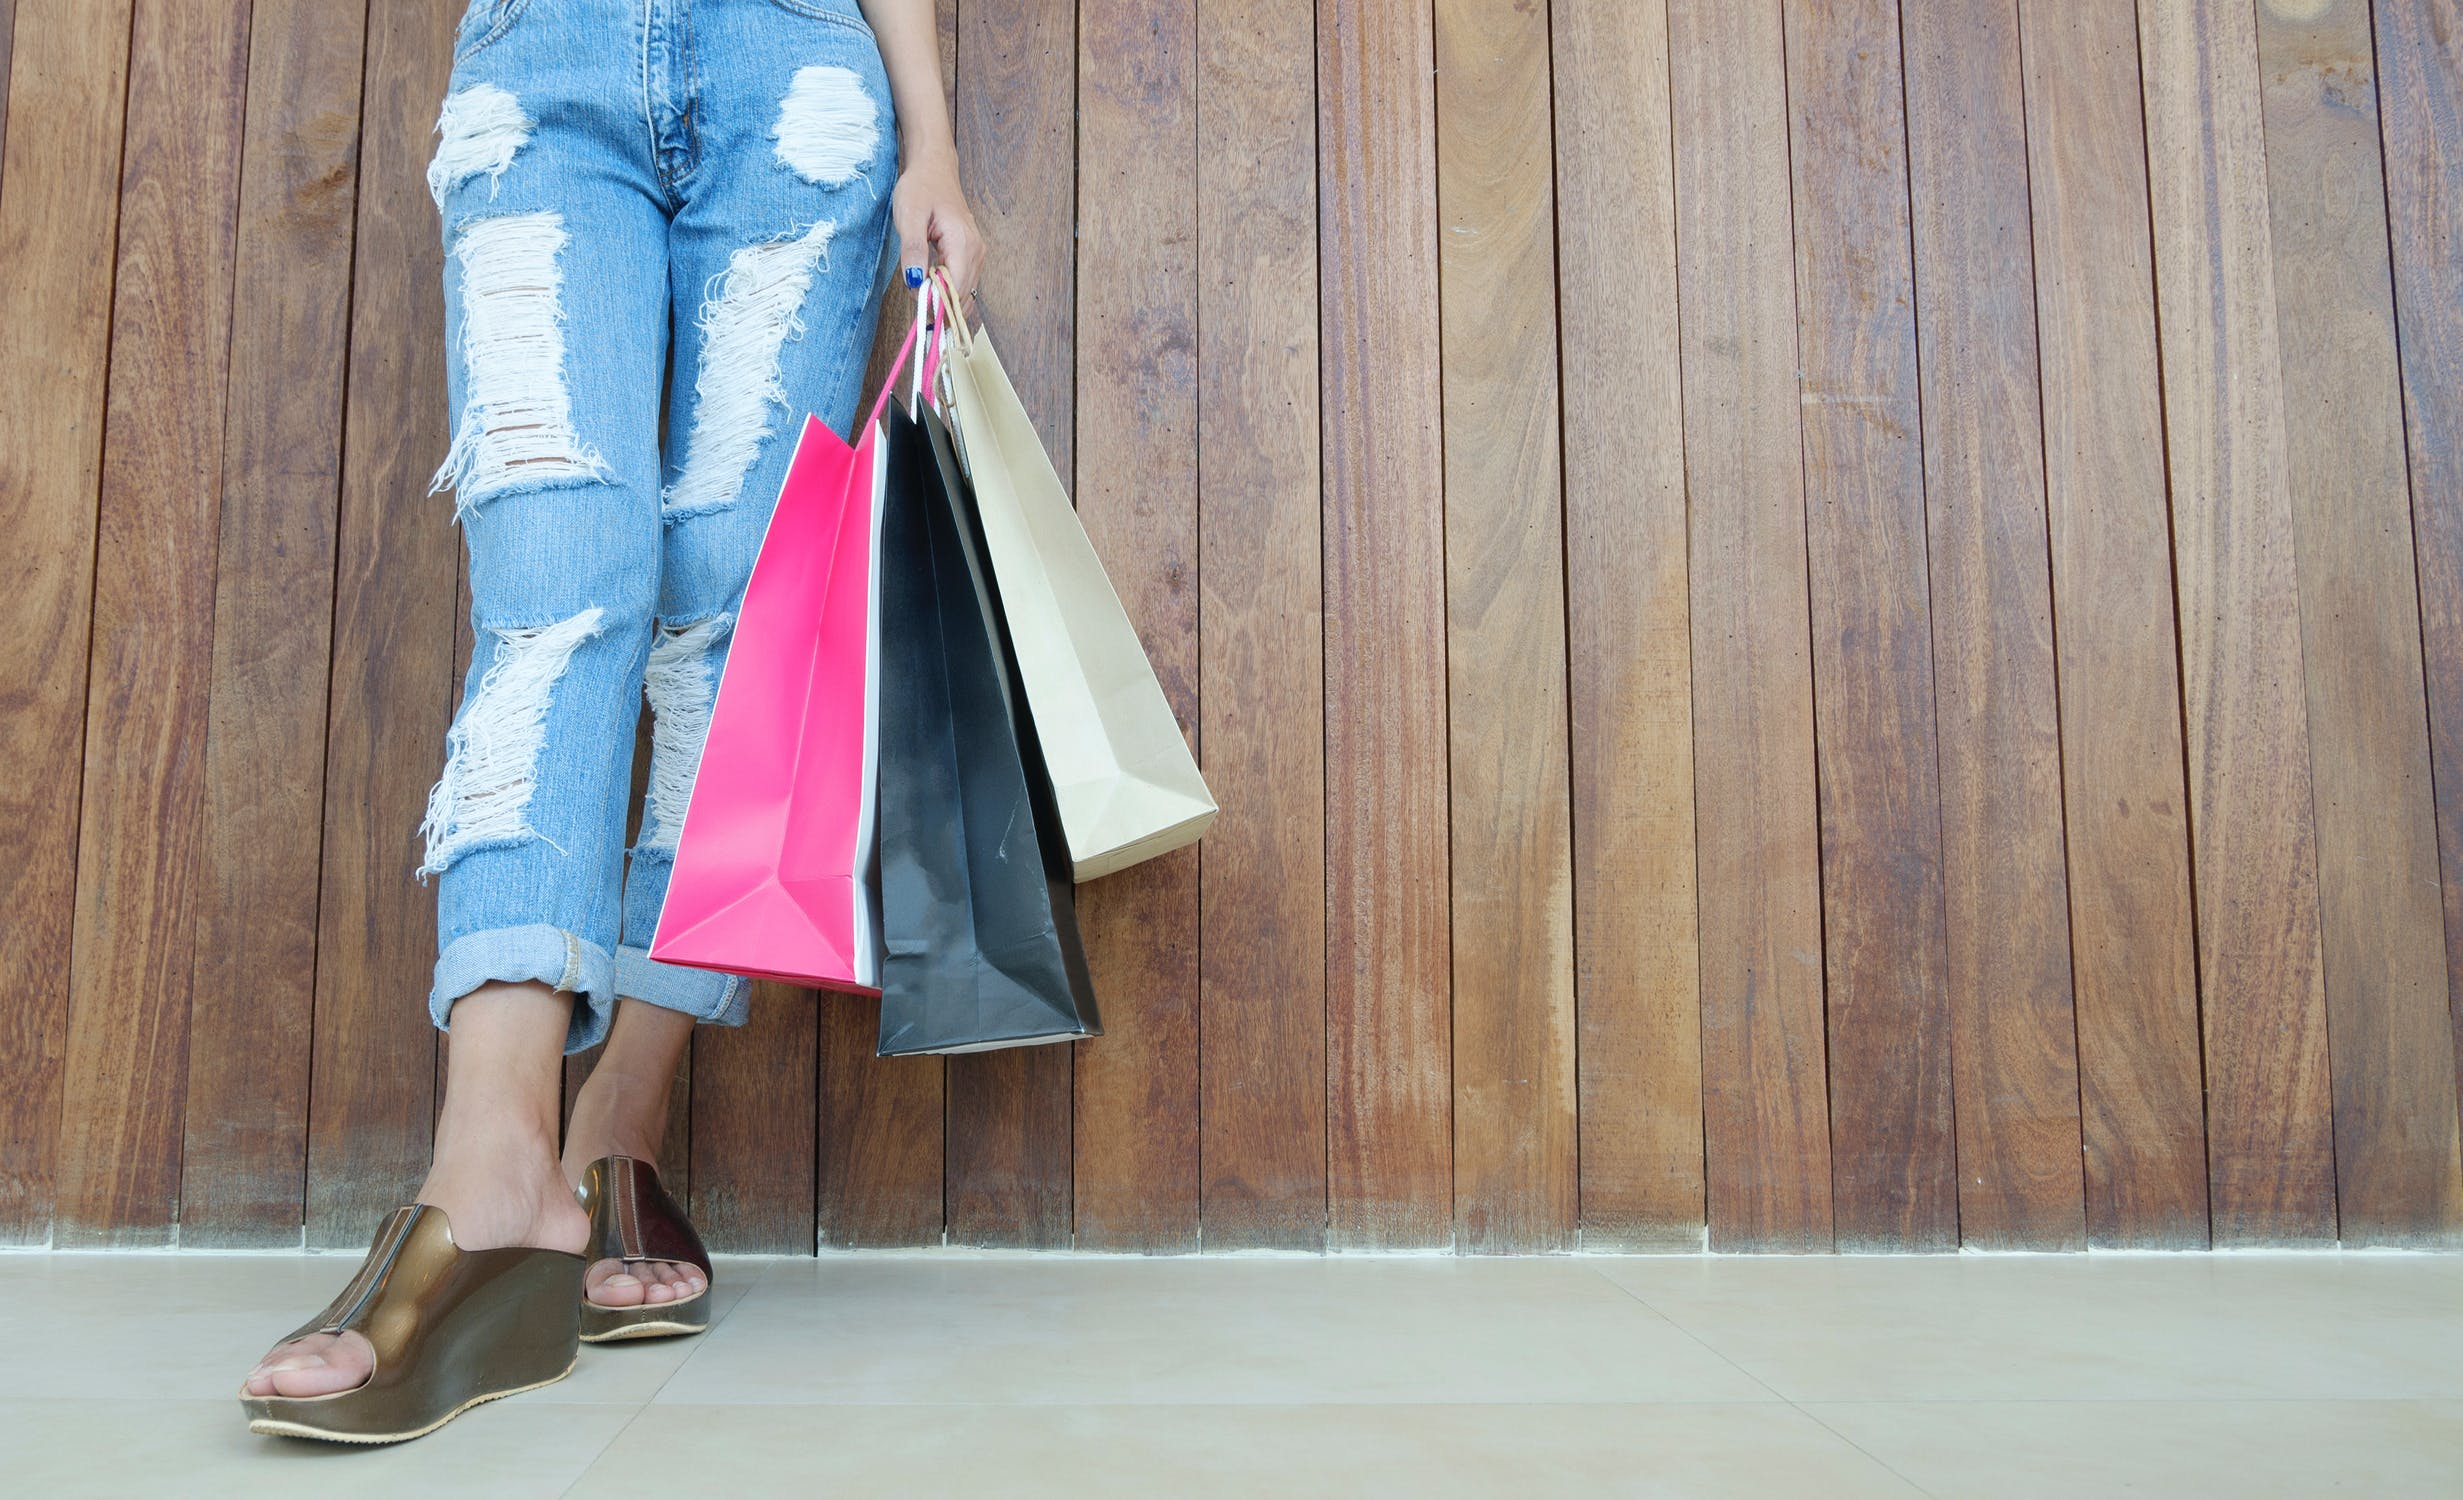 Image showing woman with shopping bags, representing customer service trends.